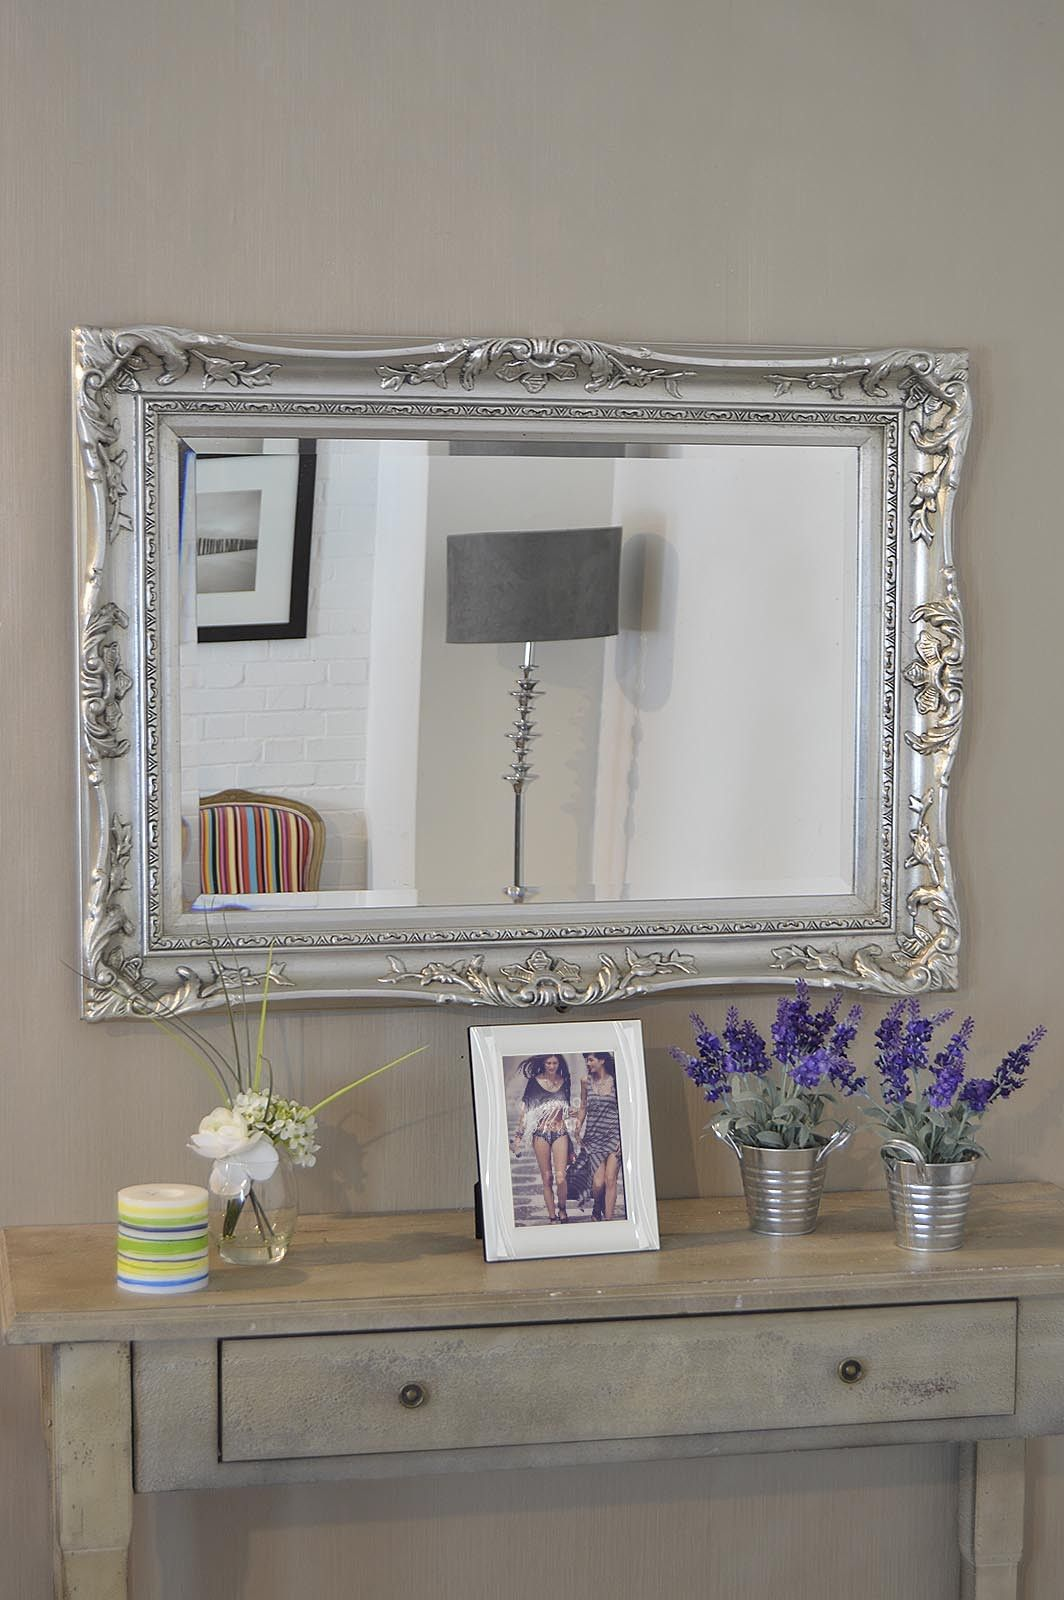 3ft2 X 2ft4 97x71cm Large Silver Ornate Antique Style Big Wall Mirror Overmantle Big Wall Mirrors Modern Mirror Wall Mirror Wall Bedroom